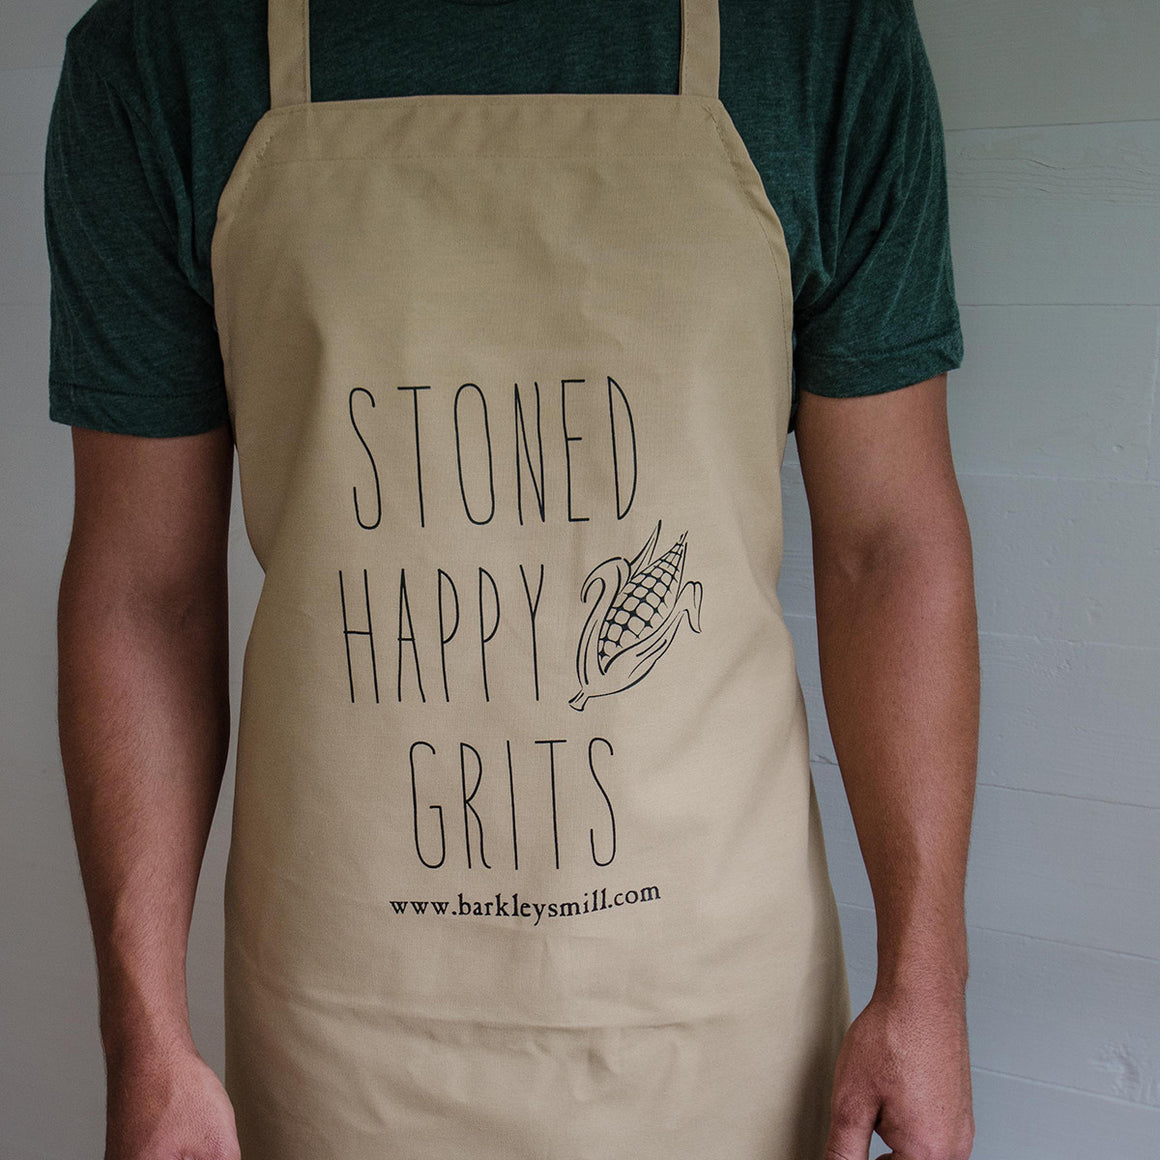 Barkley's Mill Gourmet Stoned Happy Grits Apron